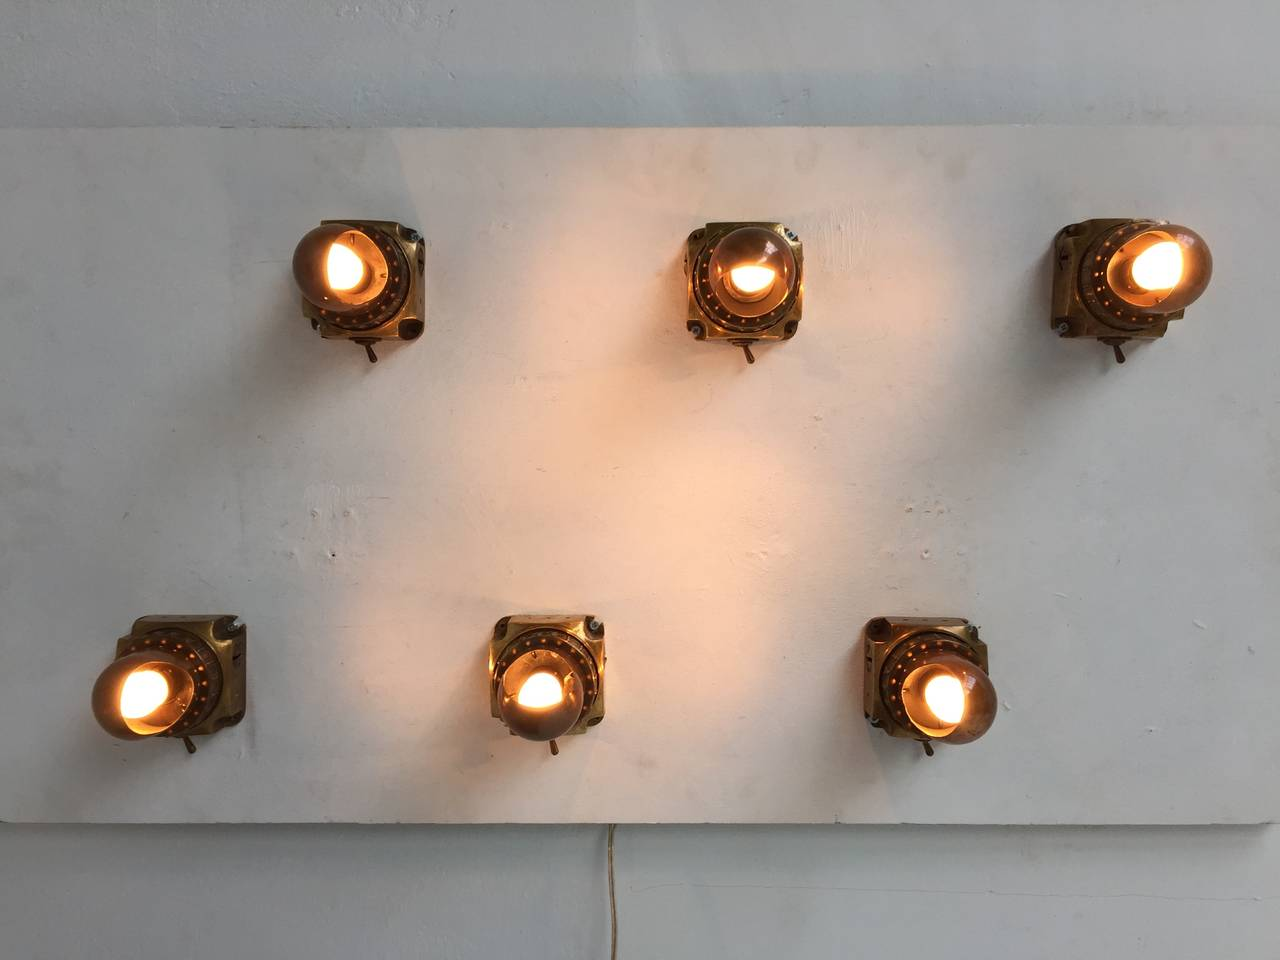 Nautical Wall Sconces With Switch : Stunning Dutch Brass Nautical Adjustable Machine Industrial Age Wall Sconces at 1stdibs